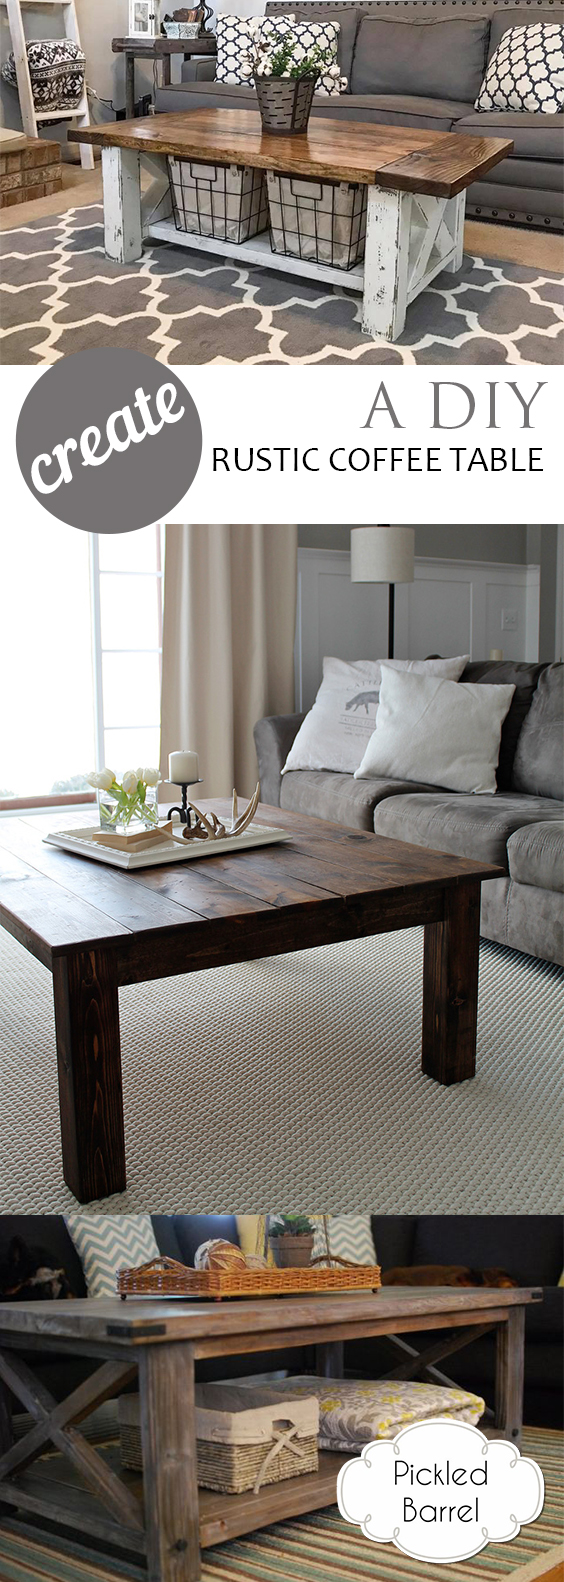 Create A Diy Rustic Coffee Table Tutorials